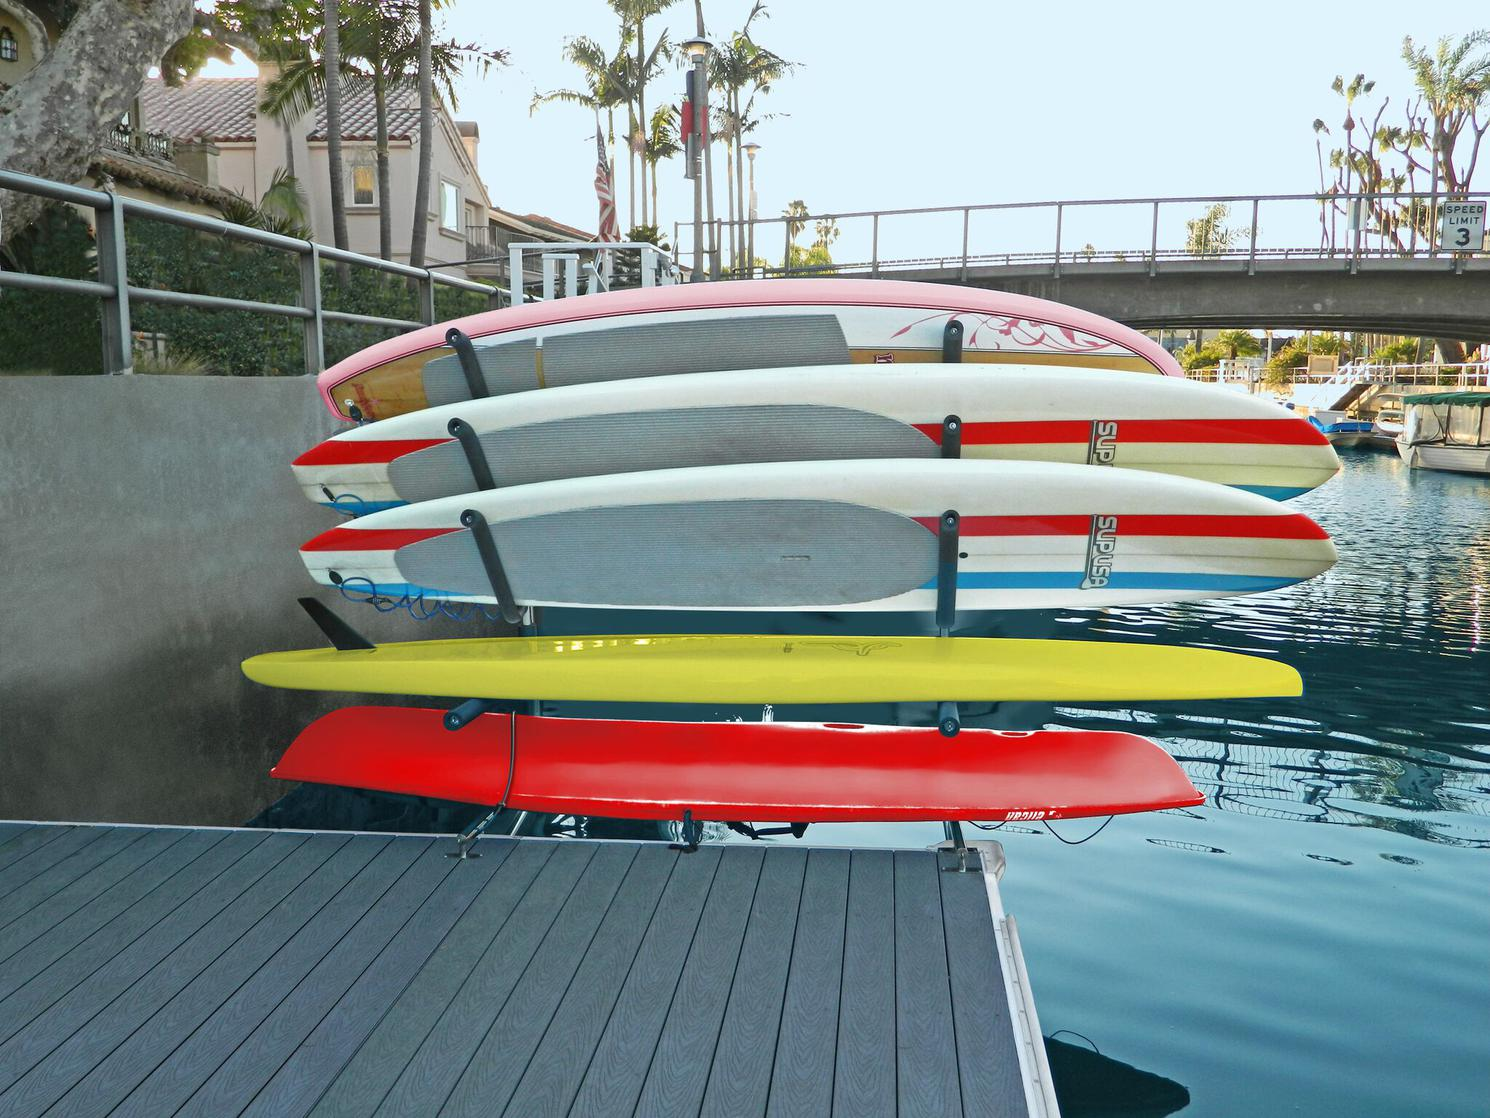 2021 Magma SUP Rack - Over the Water with 2 Angled Arm Sets